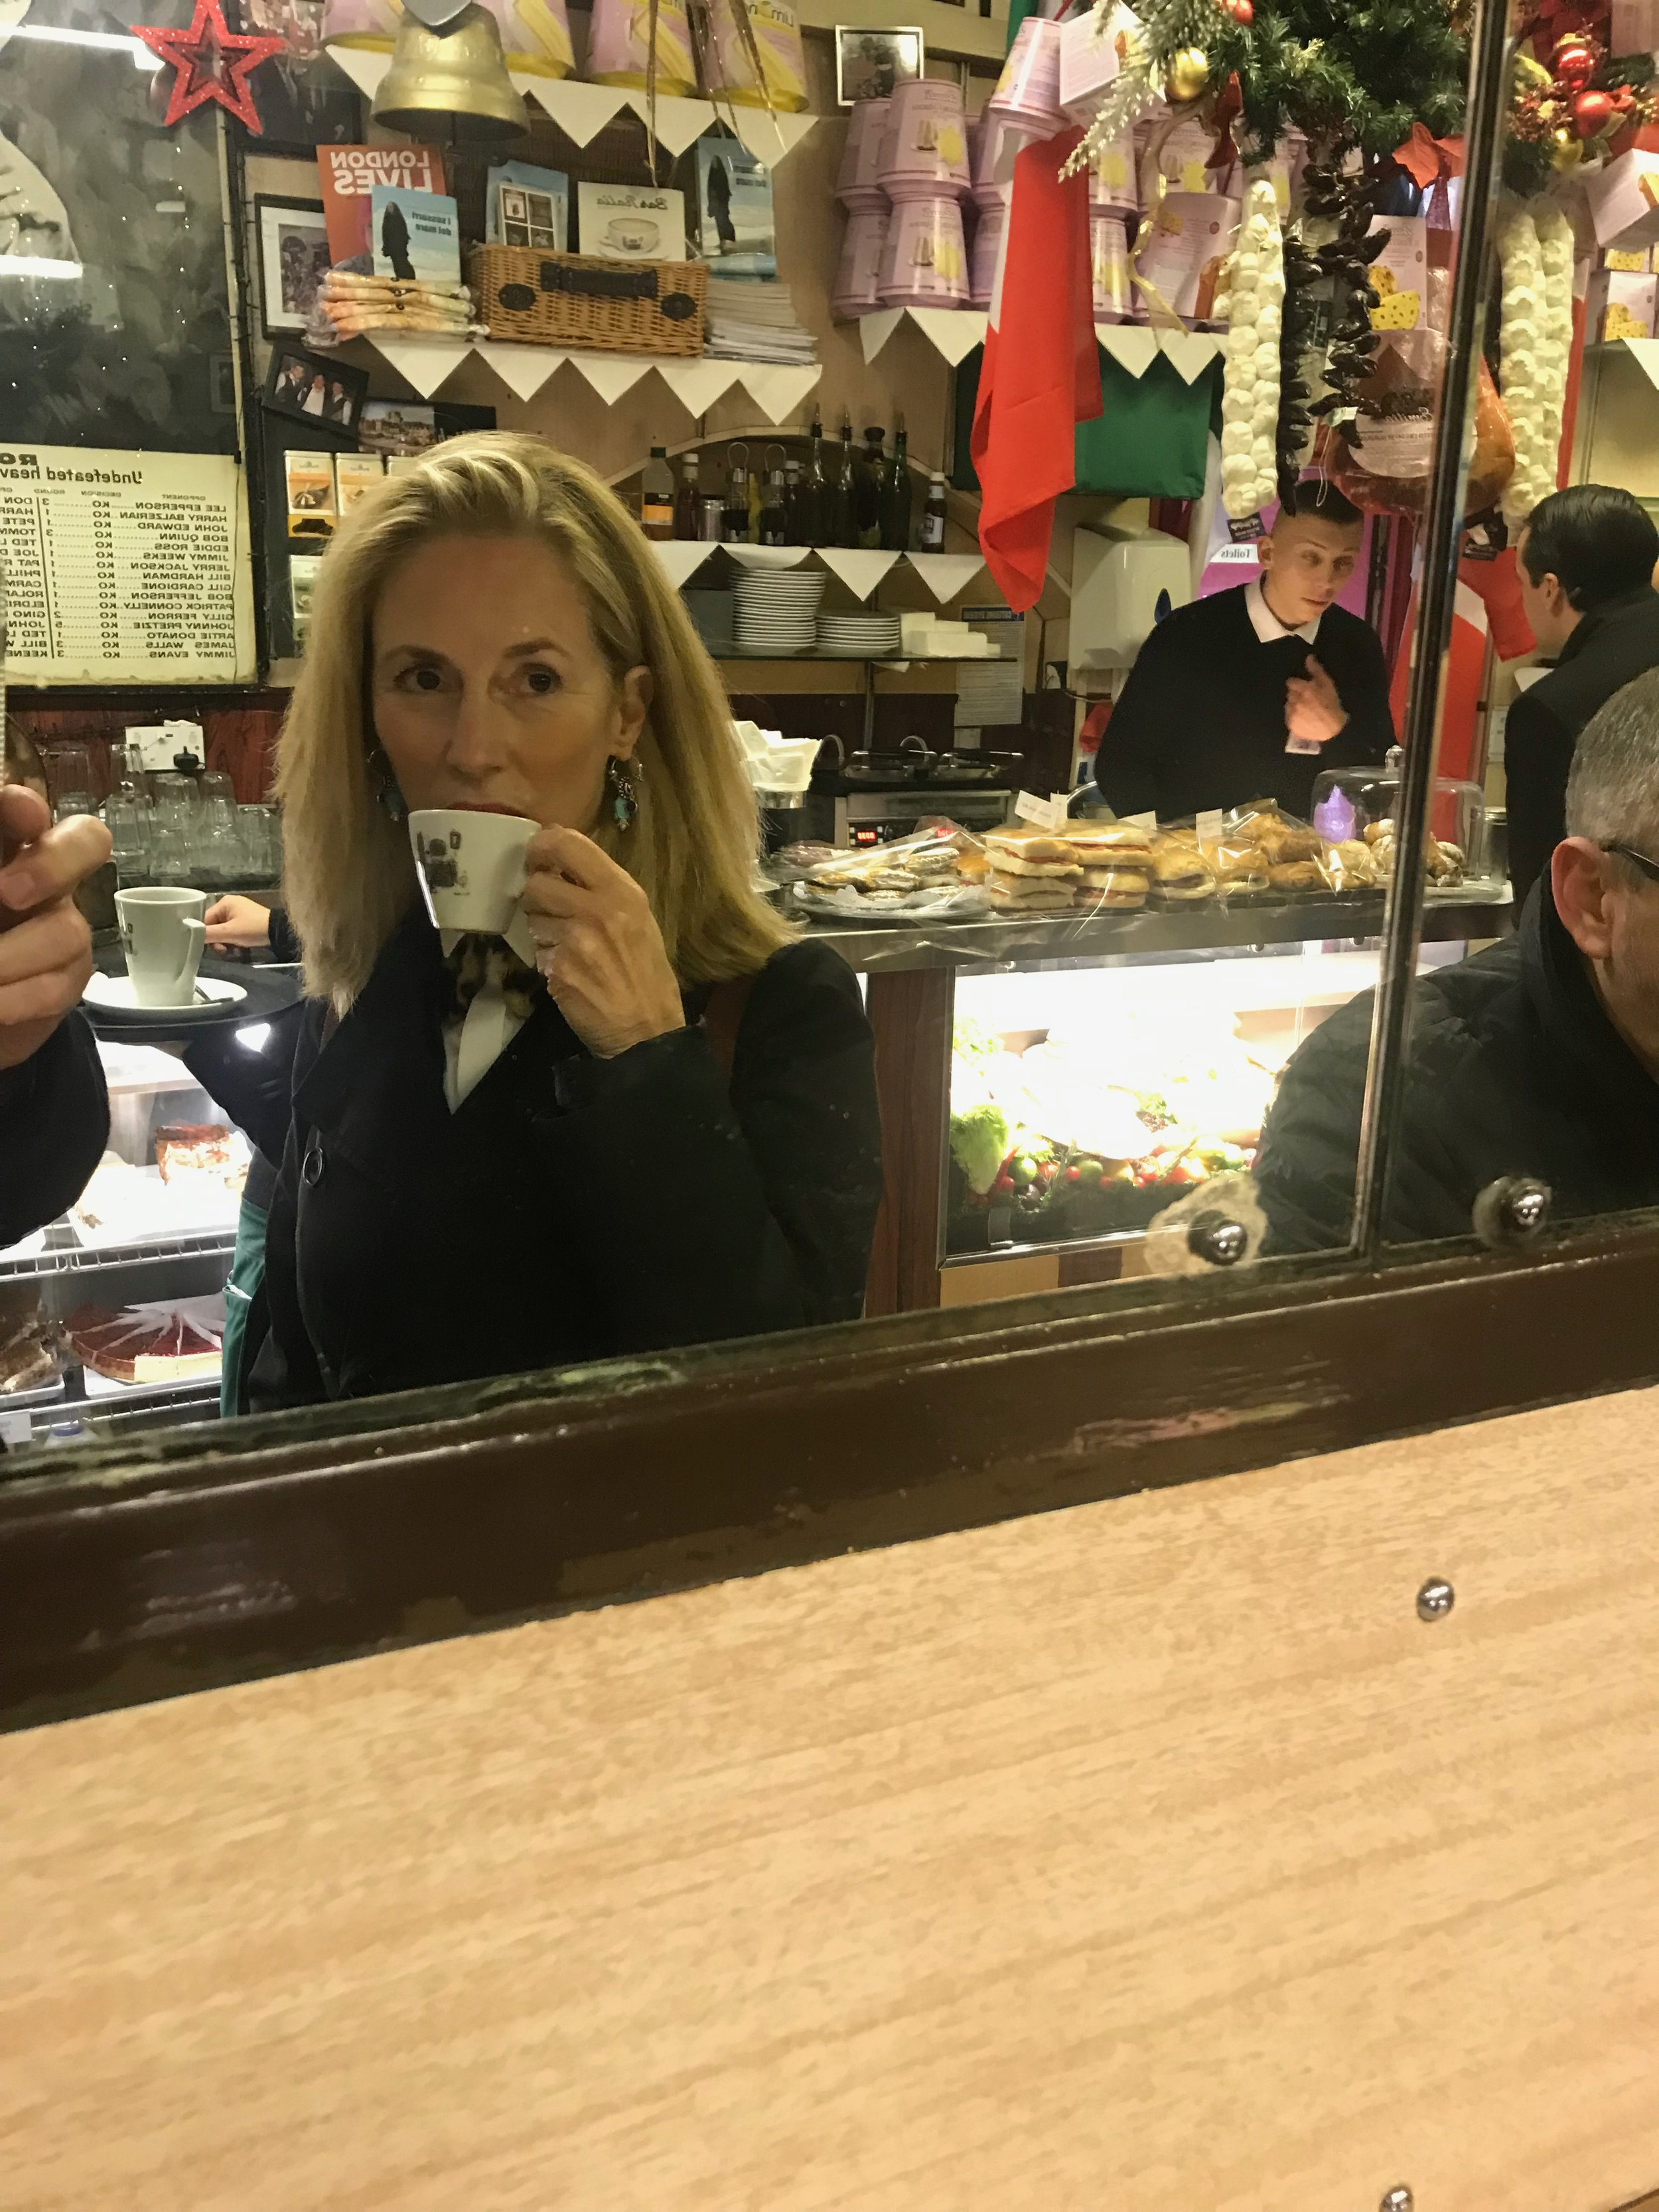 Leslie, Martin Hummel's wife, having an espresso at Bar Italia, before the next show.